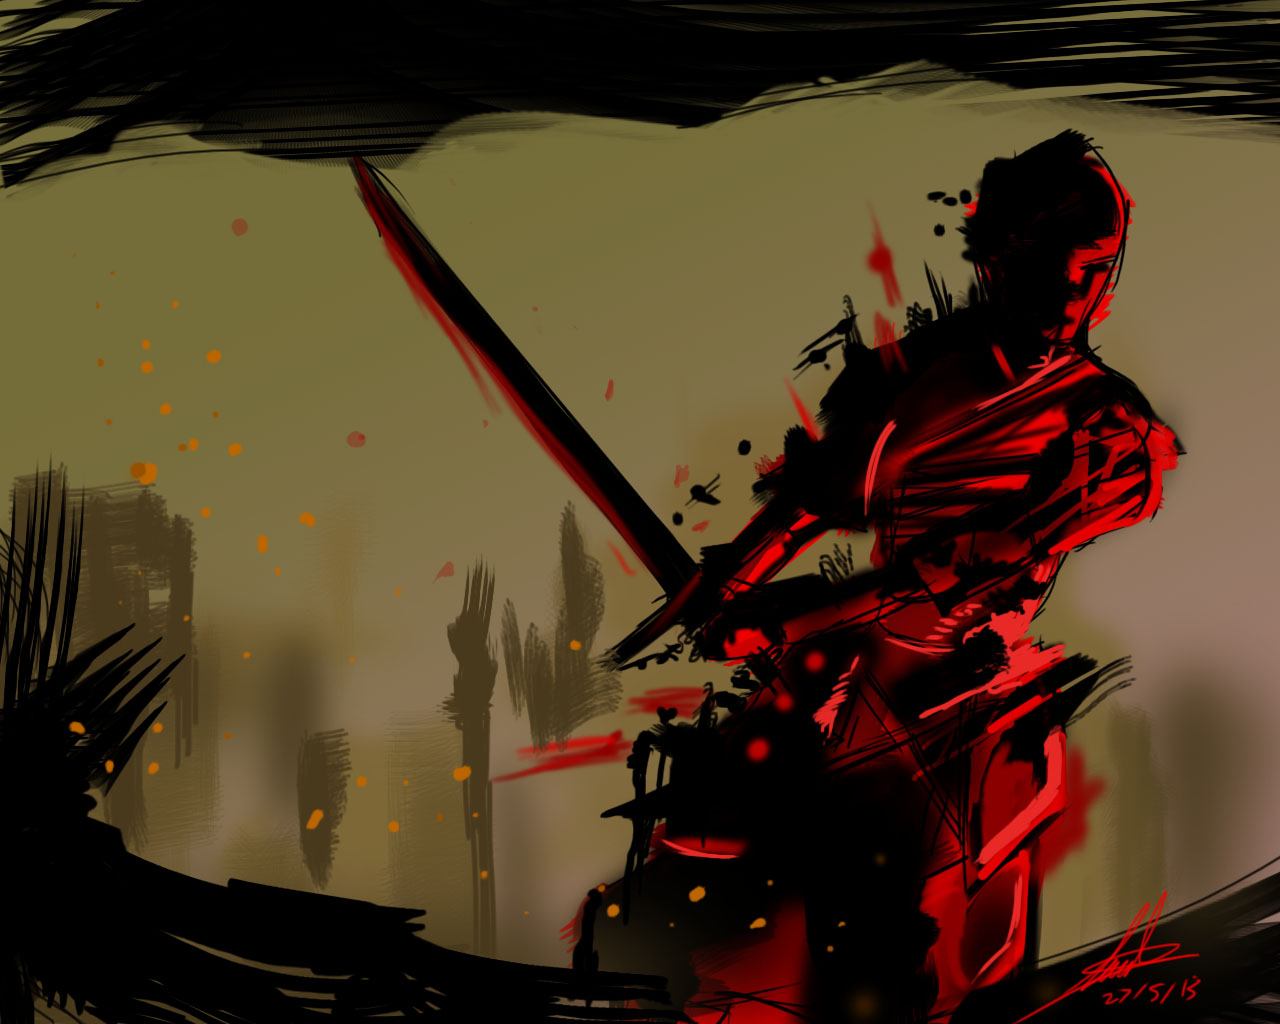 The bloody samurai